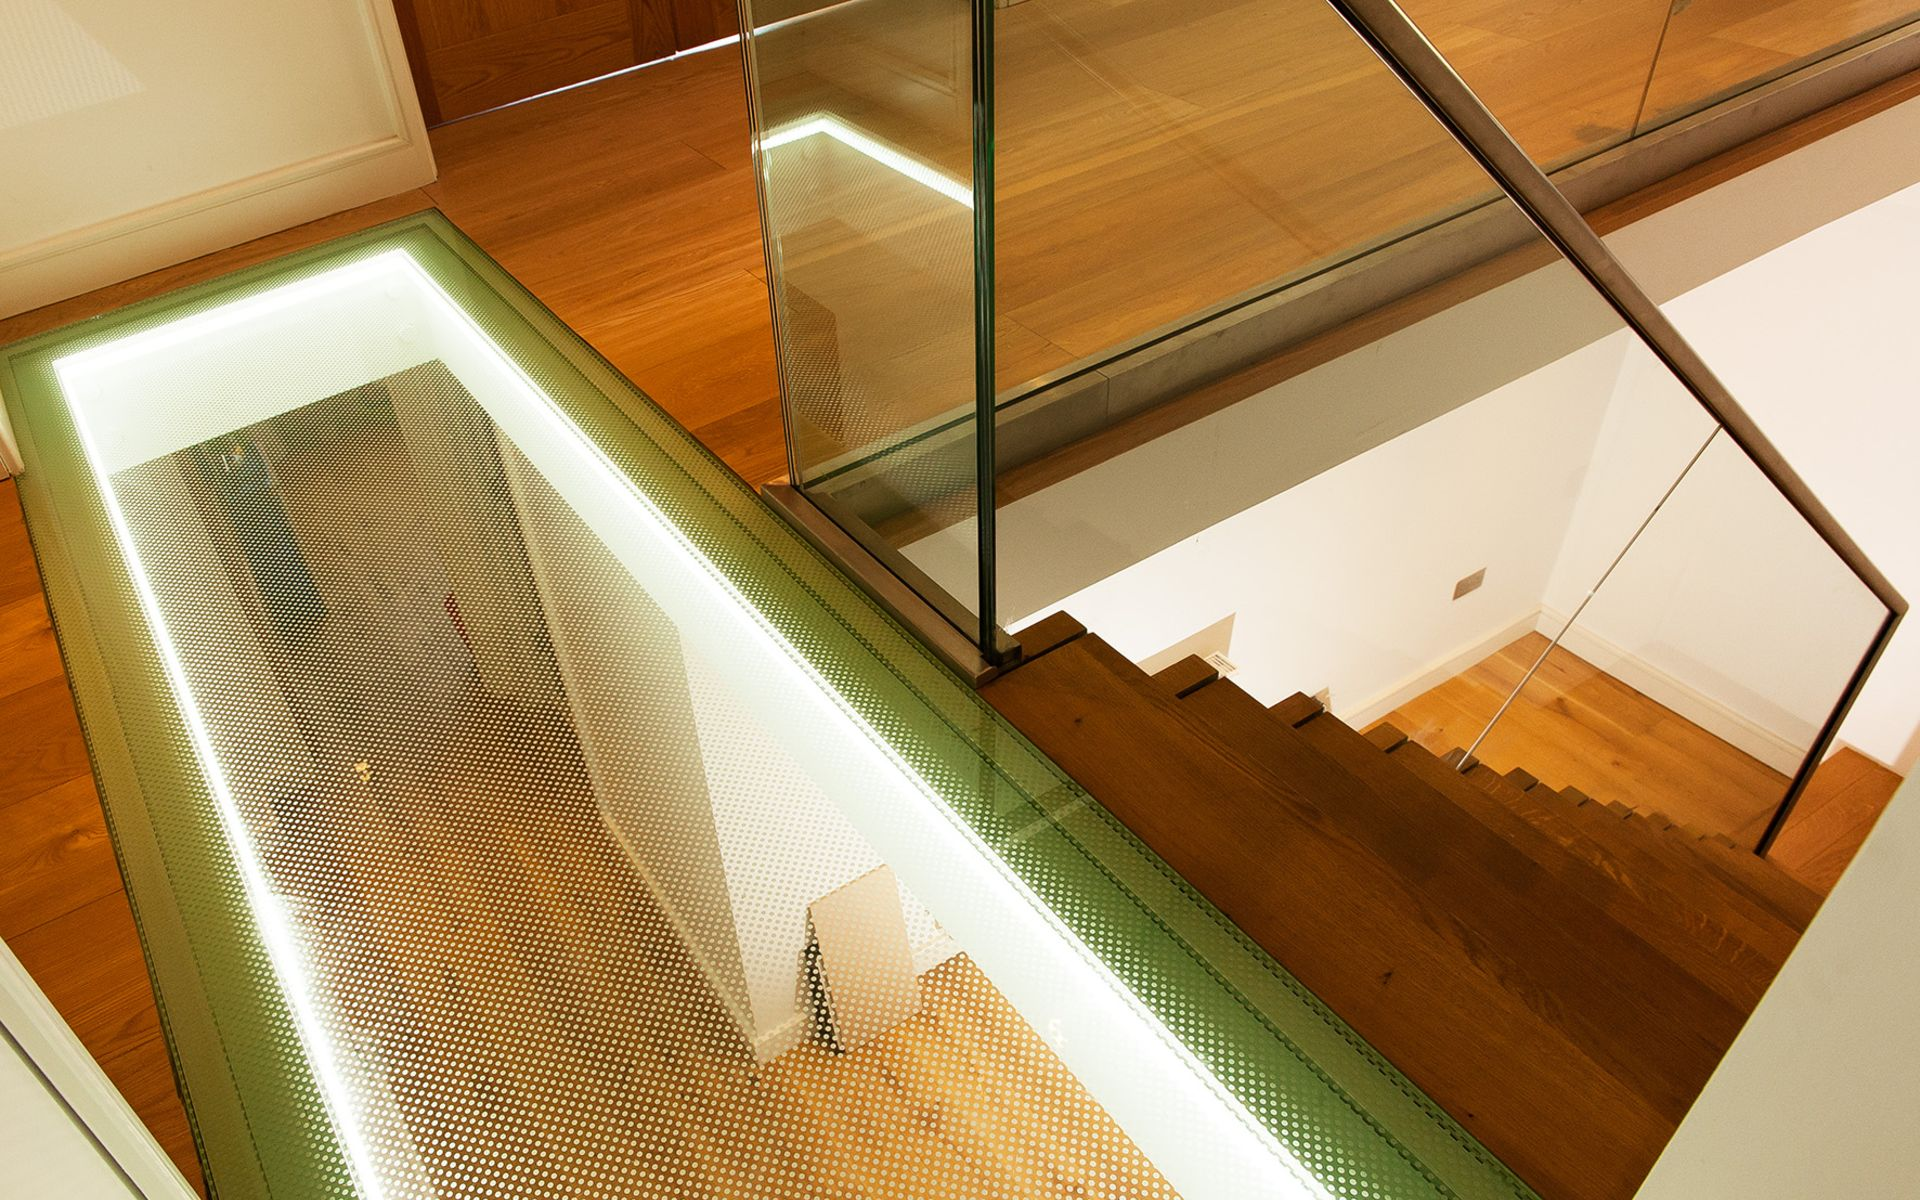 construction cost estimating helps budget for your design